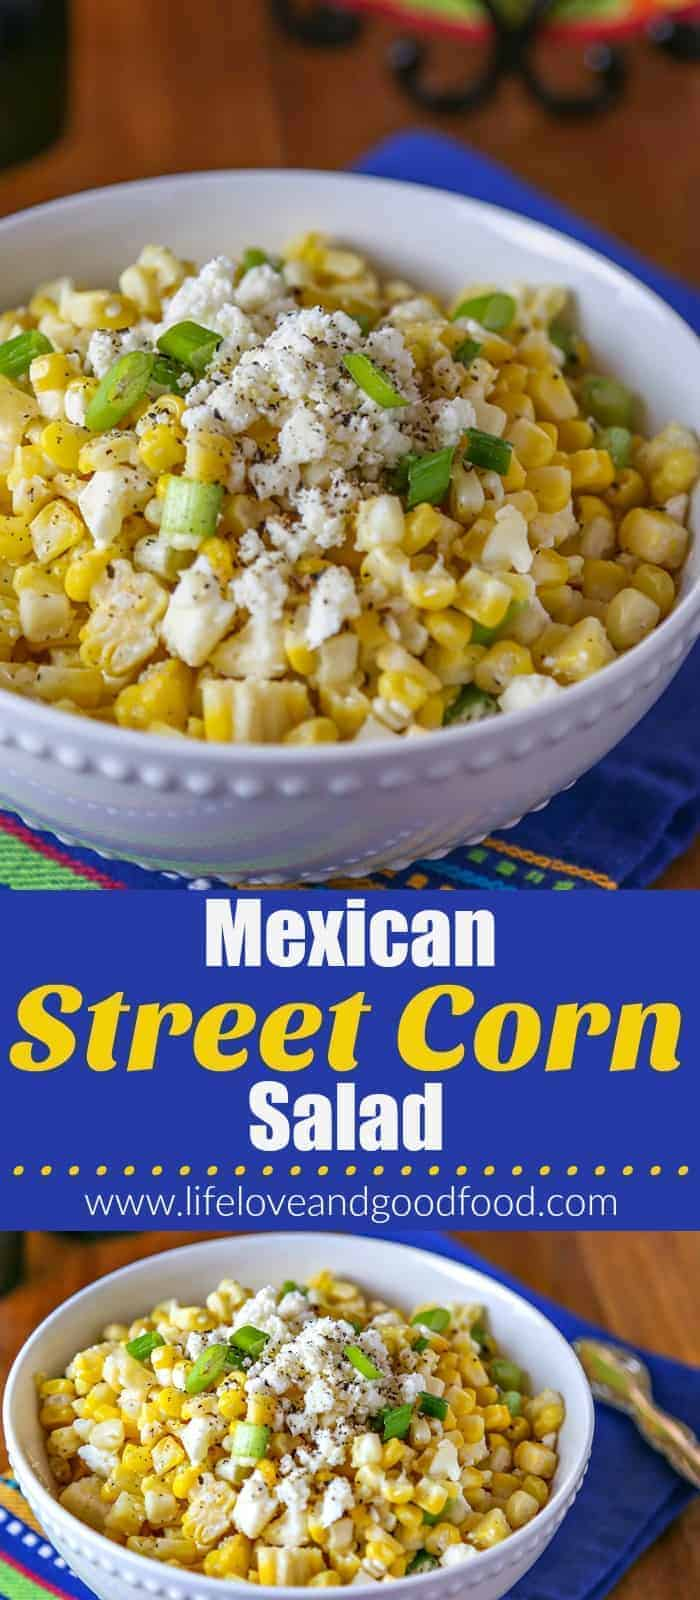 Serve this easy Mexican Street Corn Salad just once and it will quickly become one of your favorite go-to sides for taco nights at home! #Mexican #taconight #streetcorn #recipe